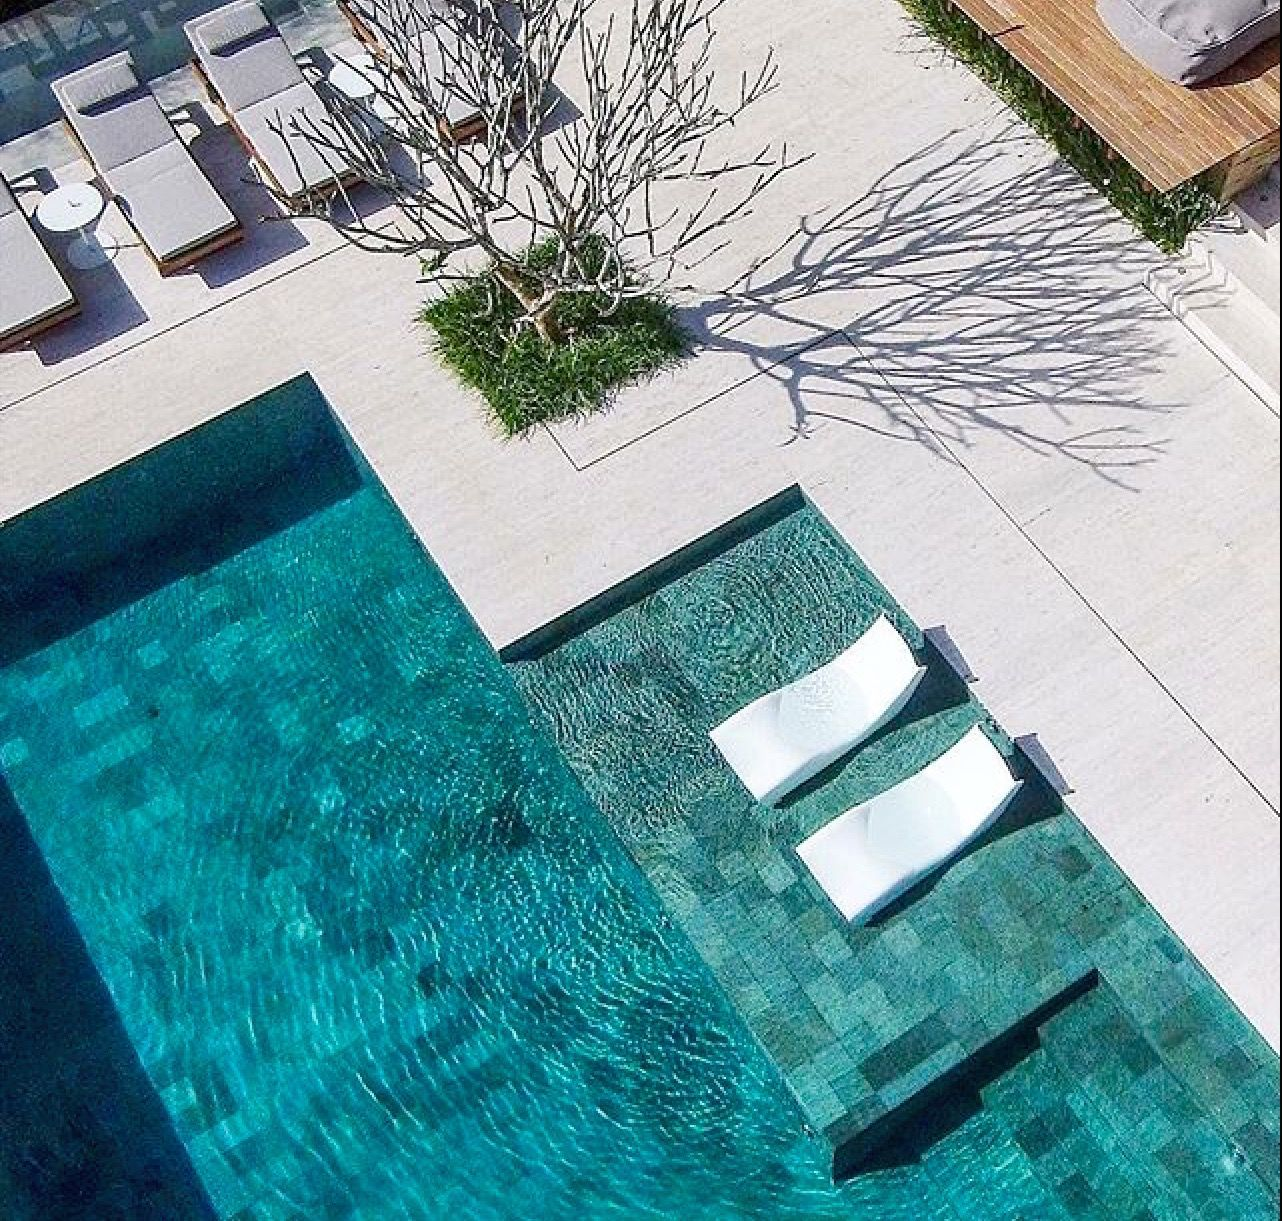 21 Best Swimming Pool Designs Beautiful Cool And Modern Cool Swimming Pools Swimming Pool Designs Modern Pools Modern backyard ideas with pool